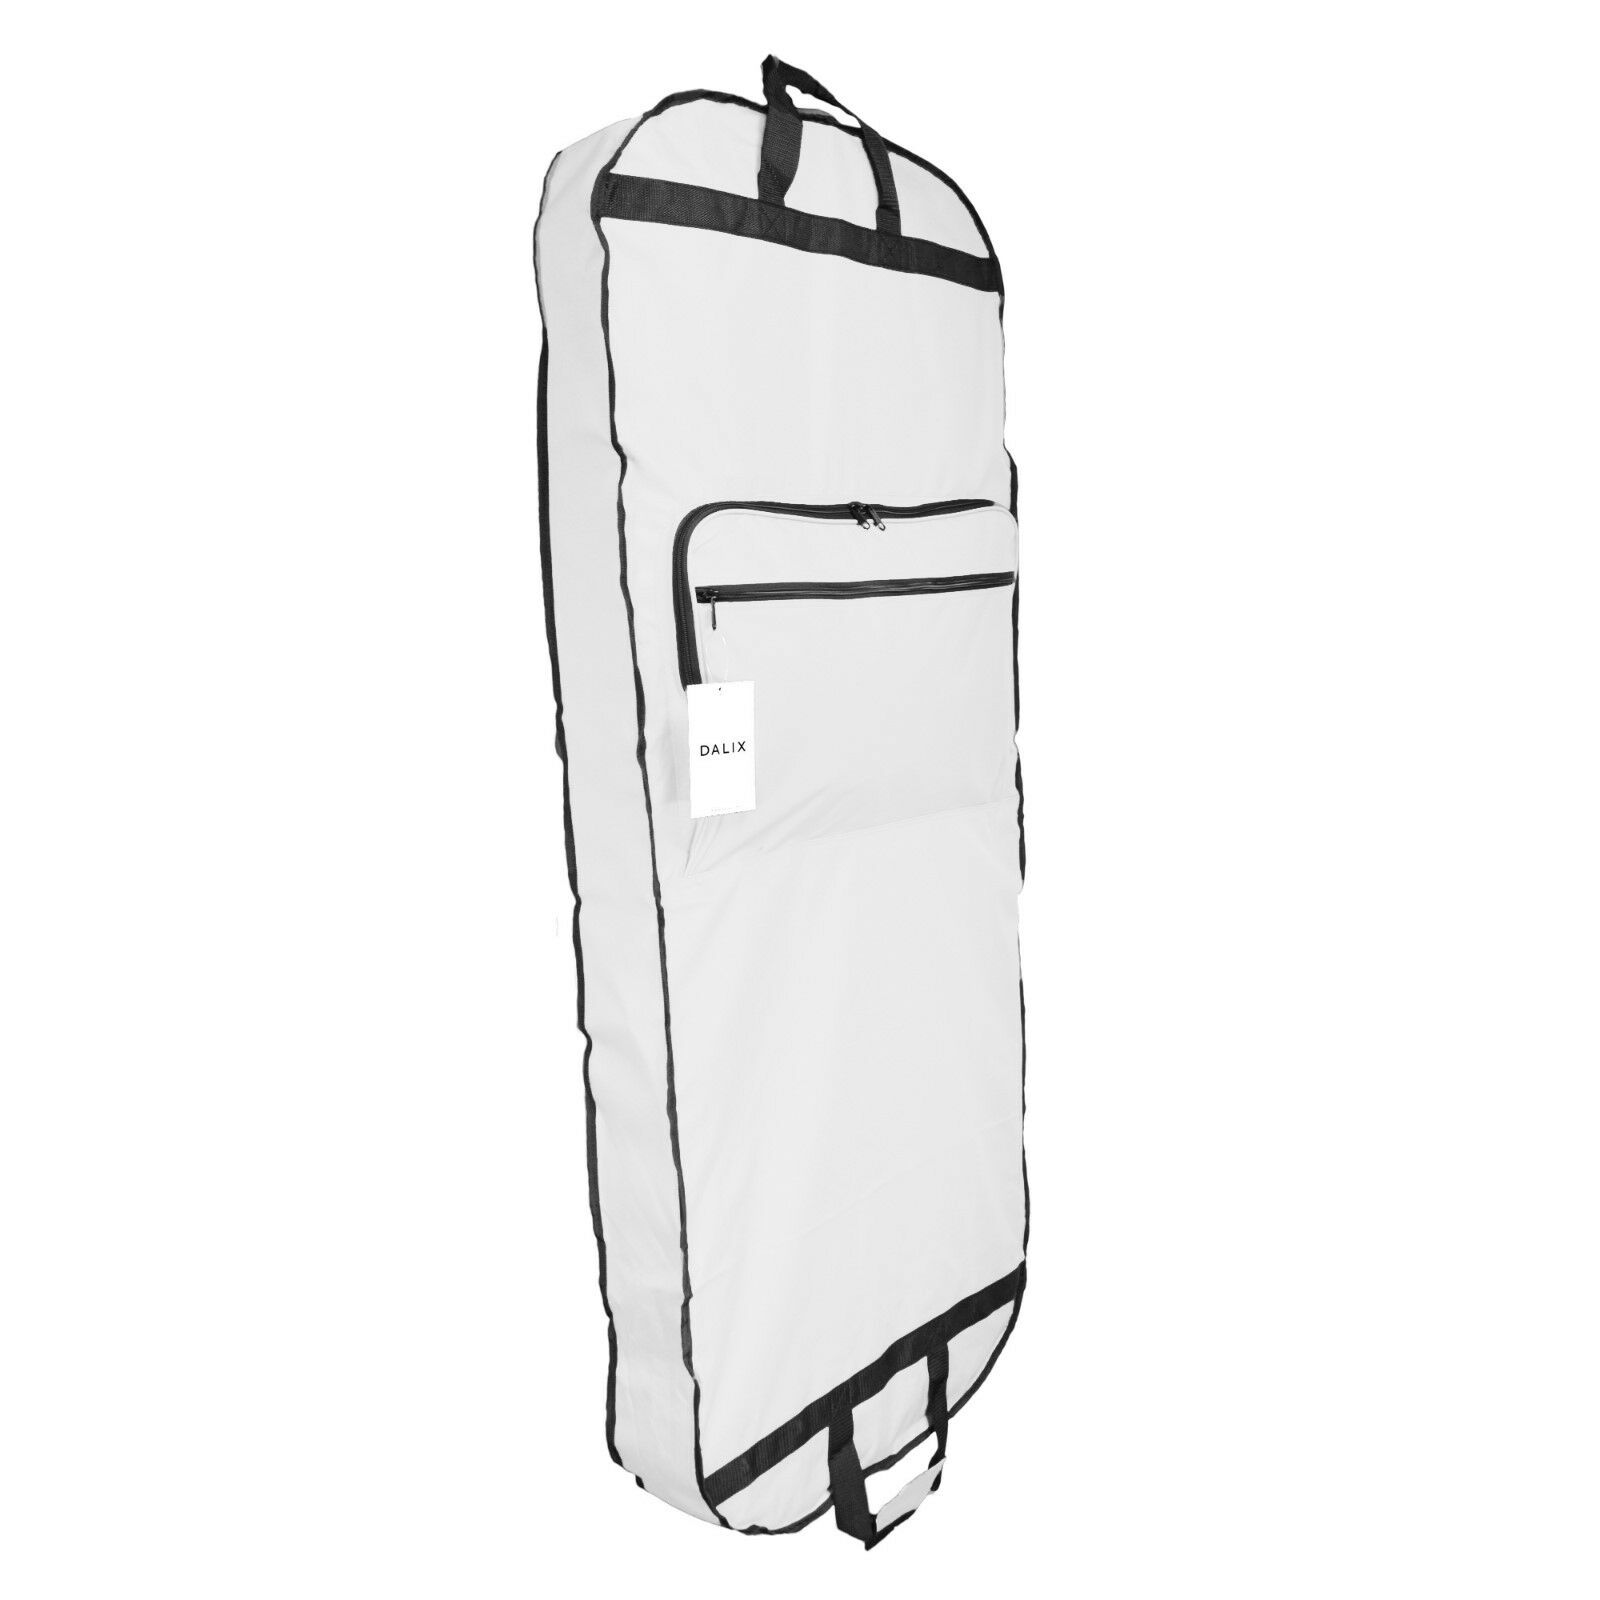 "DALIX 60"" Professional Garment Bag Cover Suits Pants Gowns D"